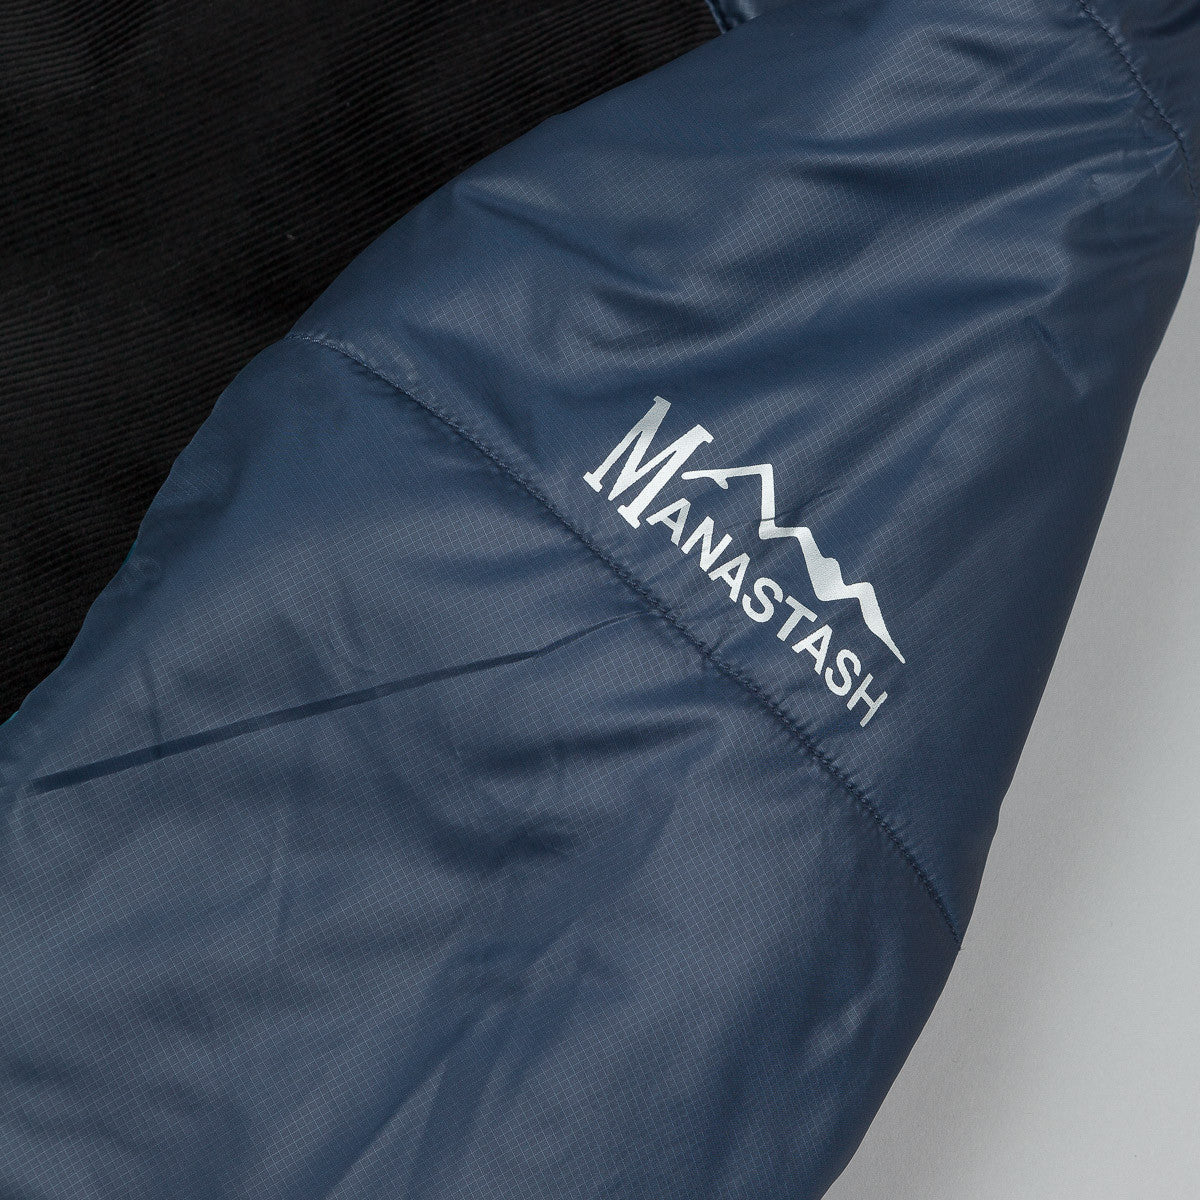 Manastash Perpri 100 Jacket-9 - Royal